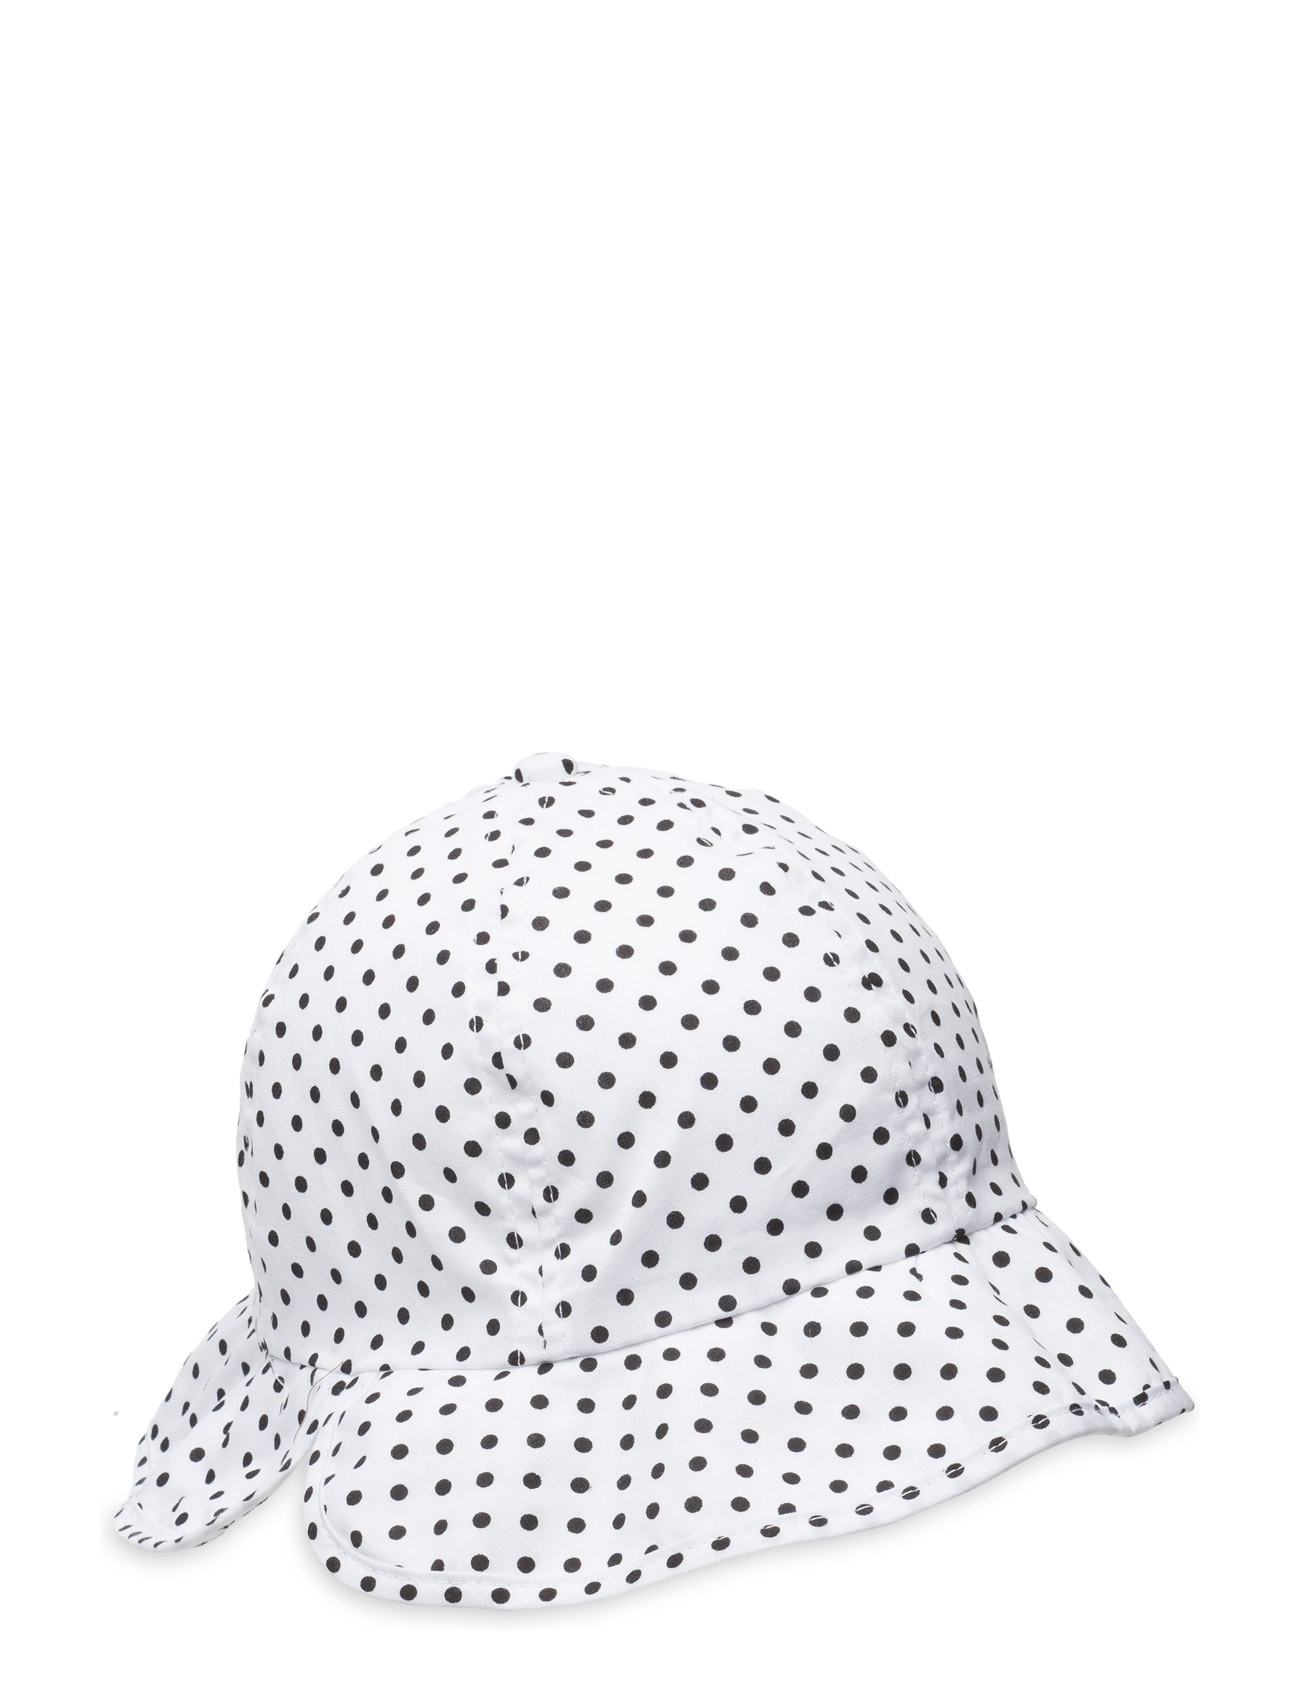 Girly Bucket Hat Melton Hatte & Caps til Børn i